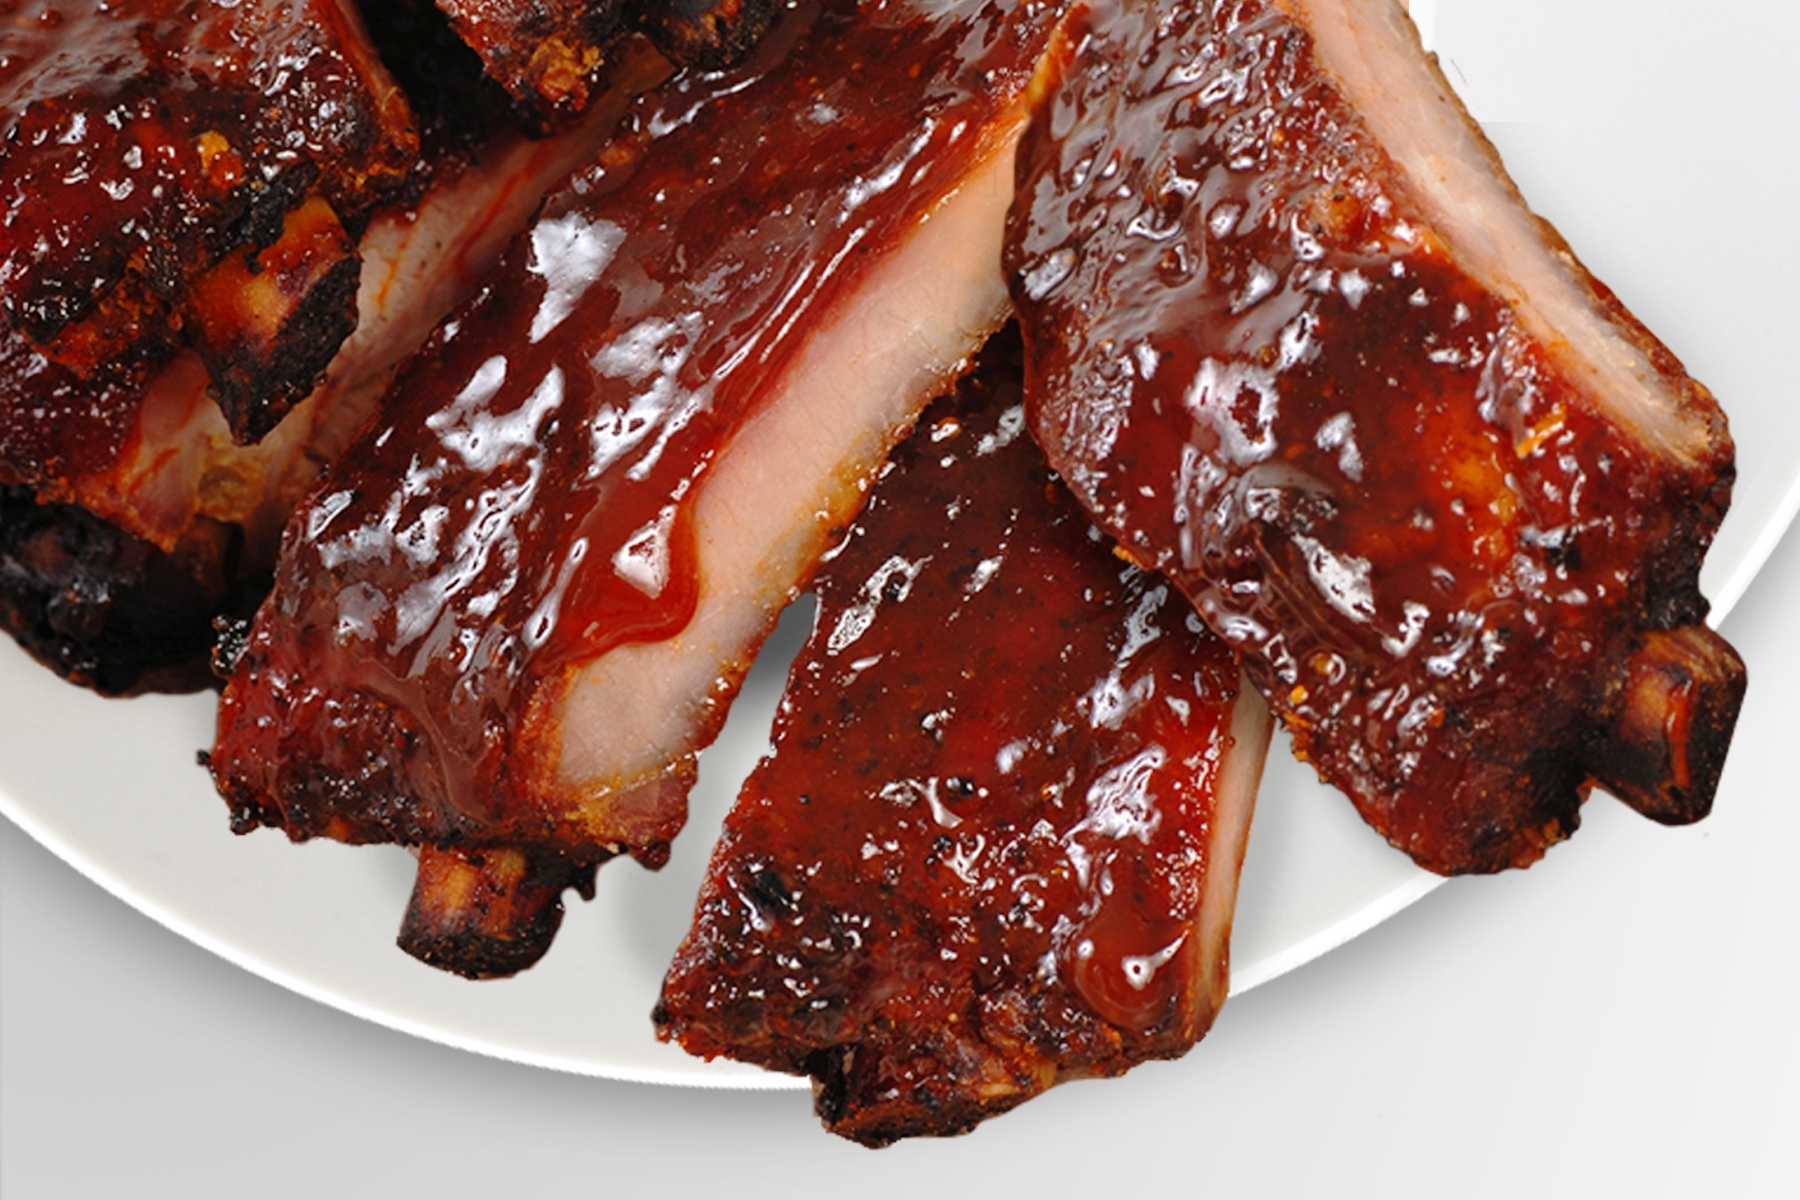 Performance Foodservice today launched Guinness® Bold Entrées, an exclusive and distinct line of beer-infused modern foods created in partnership with Guinness and renowned Chef Todd Davies. From saucy pork ribs to braised corned beef infused and marinated in Guinness, these bold and flavorful entrées aim to take customer menus to a whole new level. Beer is gaining popularity as a key ingredient in restaurant dishes across the country. (Photo: Business Wire)